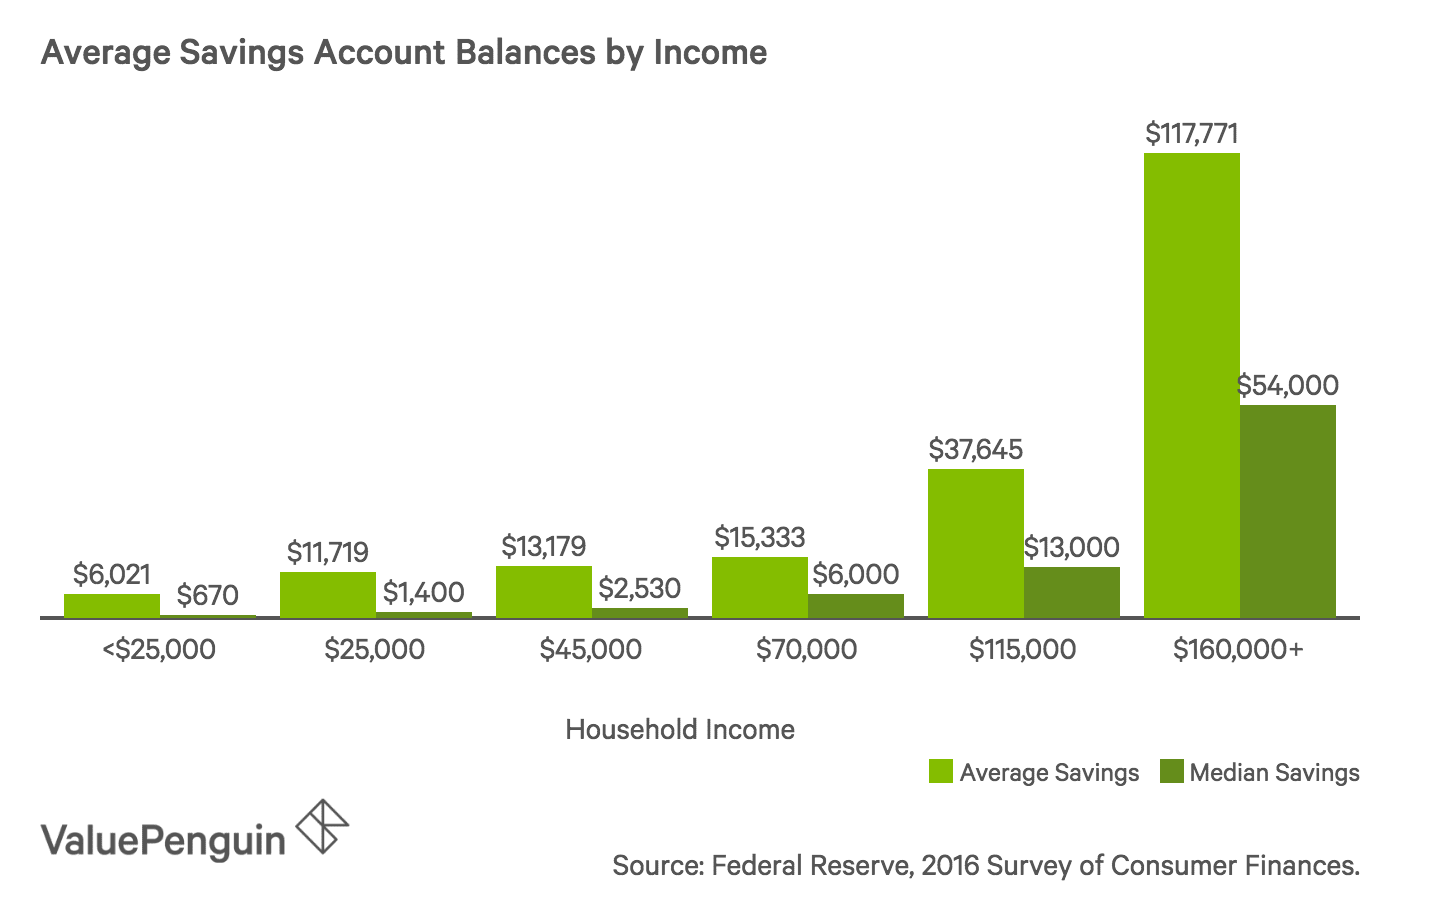 Bar chart showing average and median savings account balances for different income bands